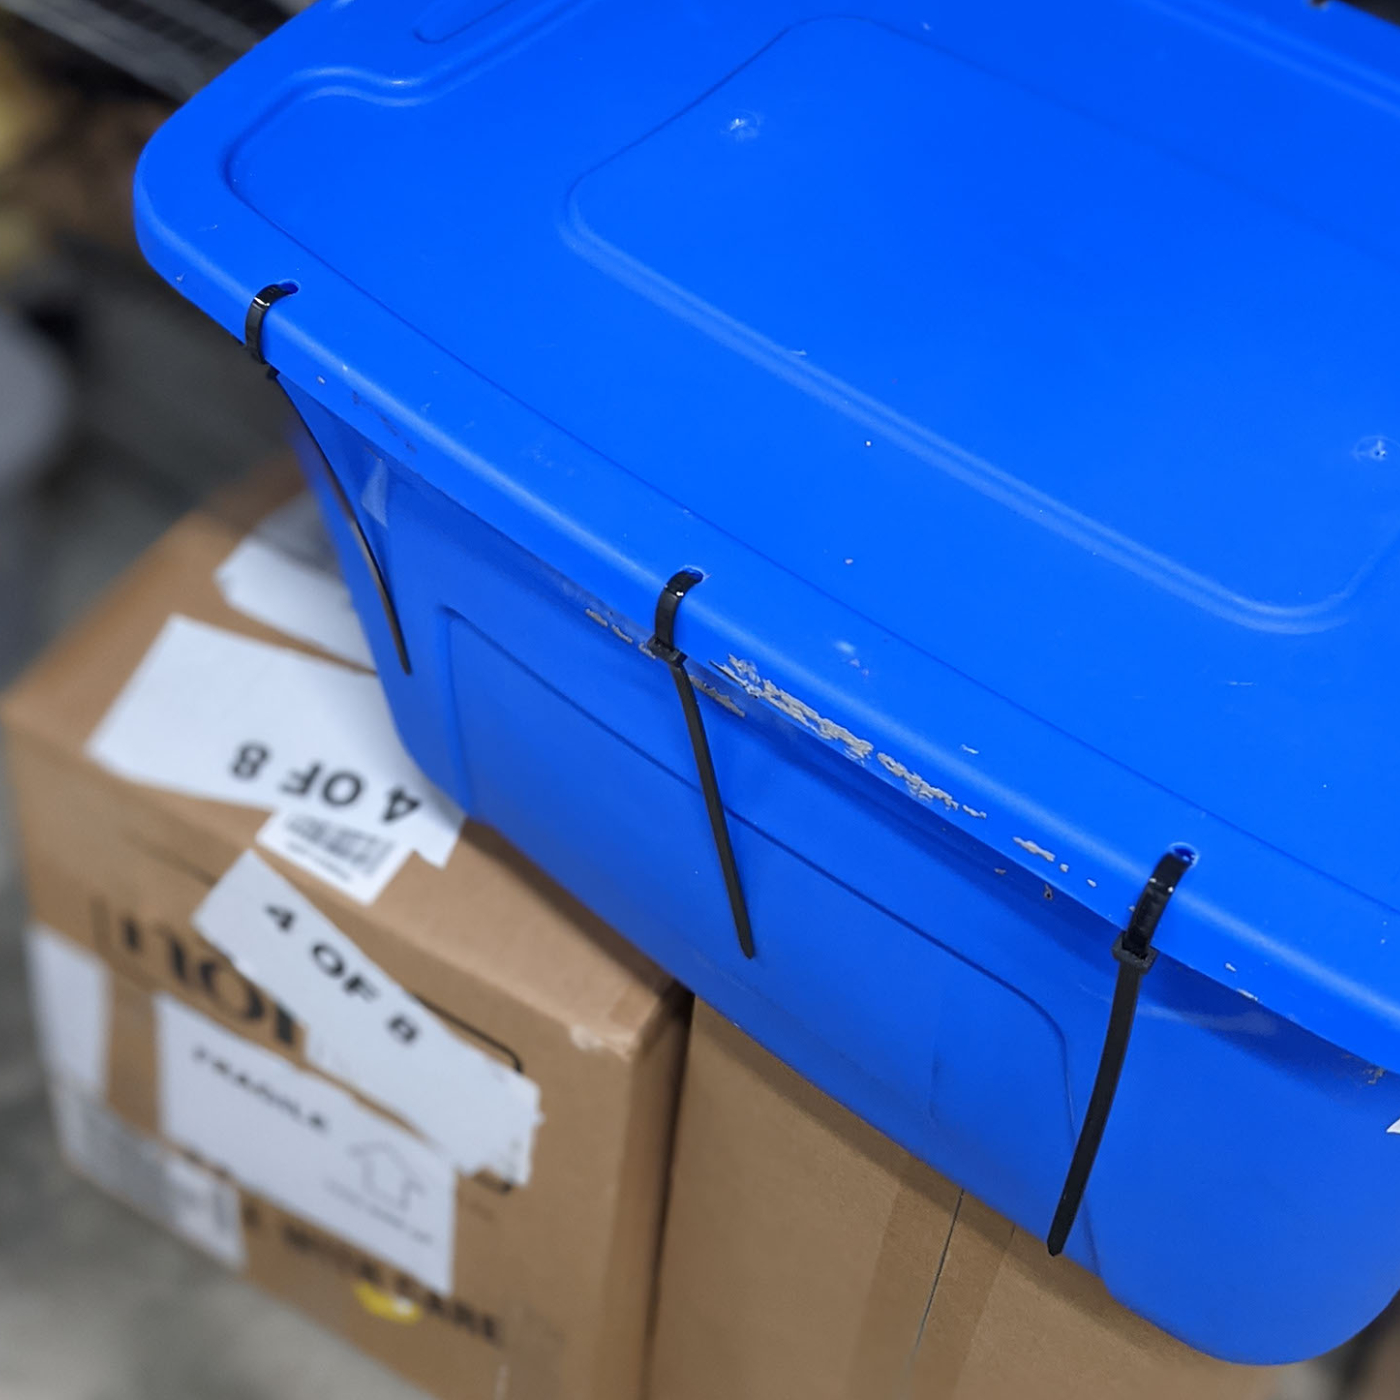 A blue storage tote with heavy duty zip ties sealing the container shut.